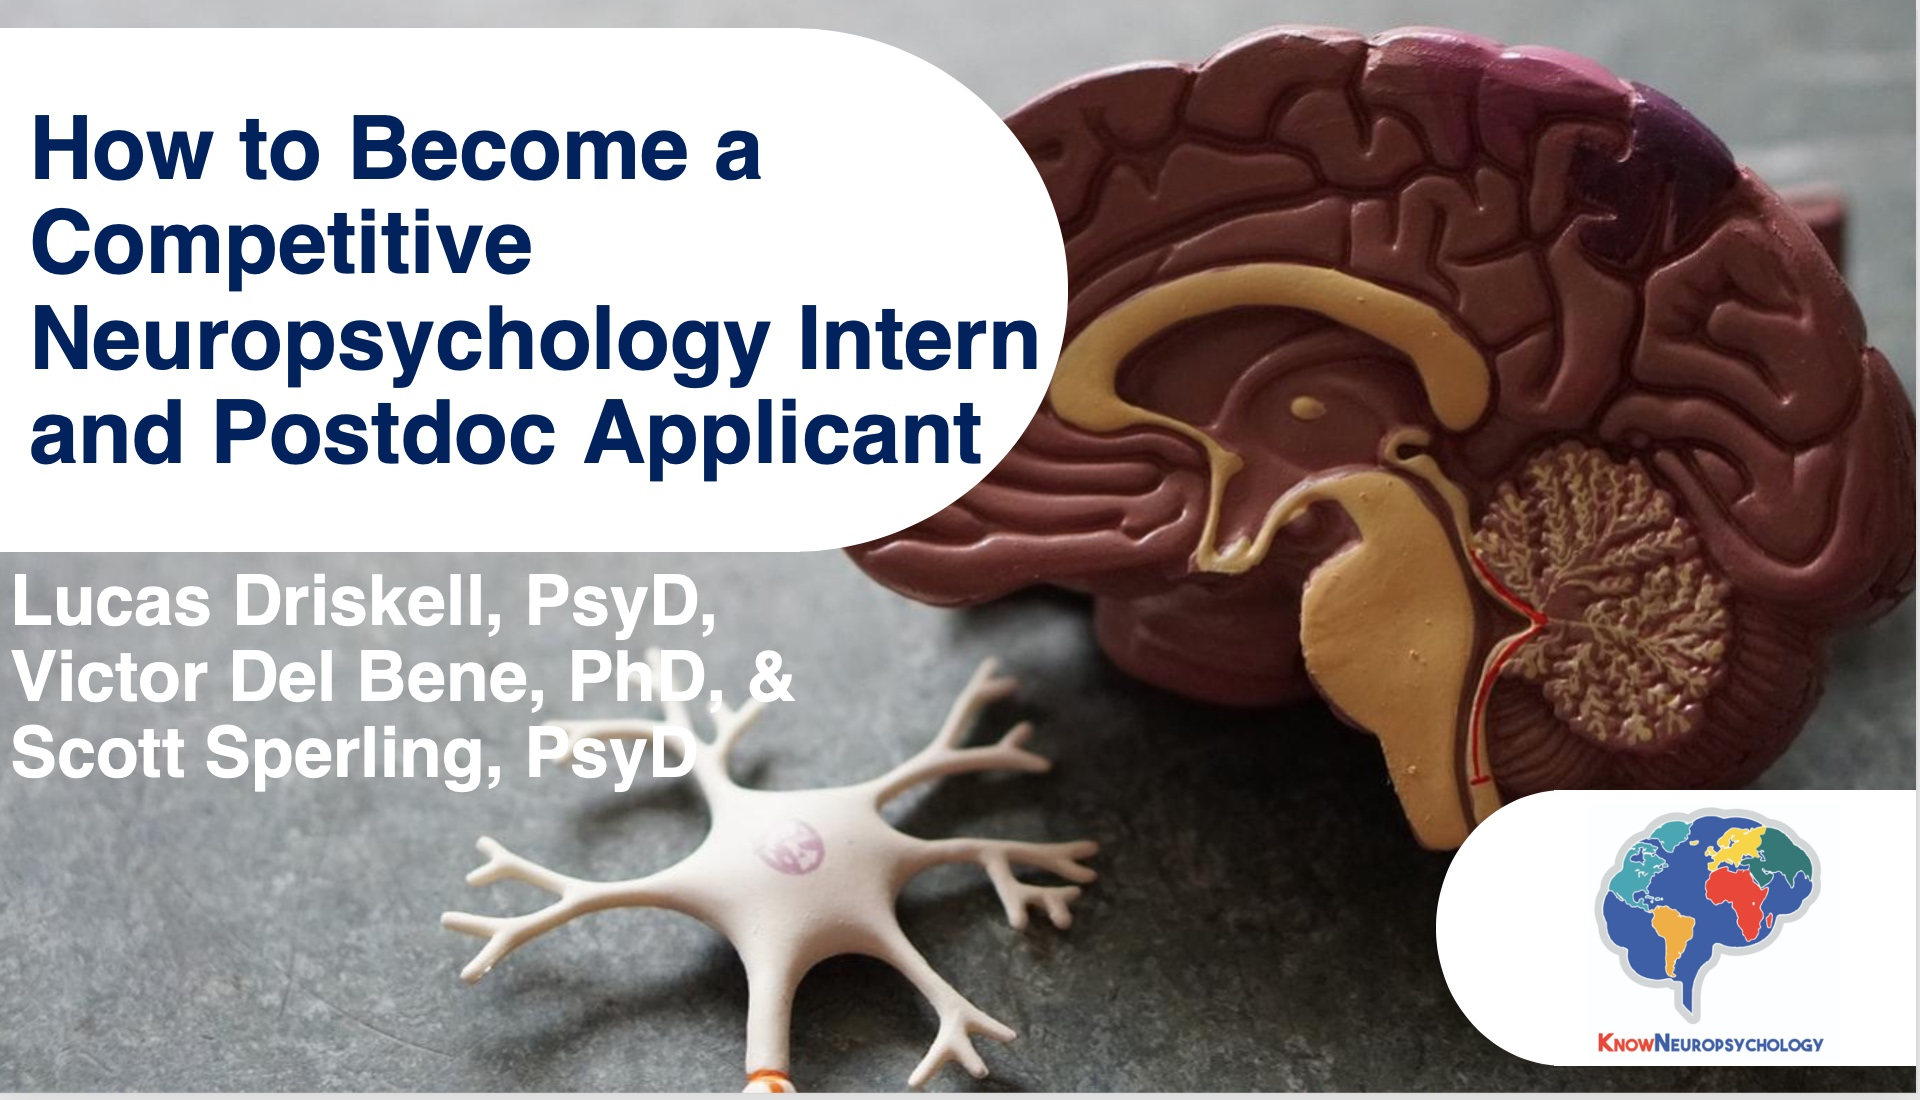 How to become a competitive neuropsychology intern and postdoc applicant lecture recording